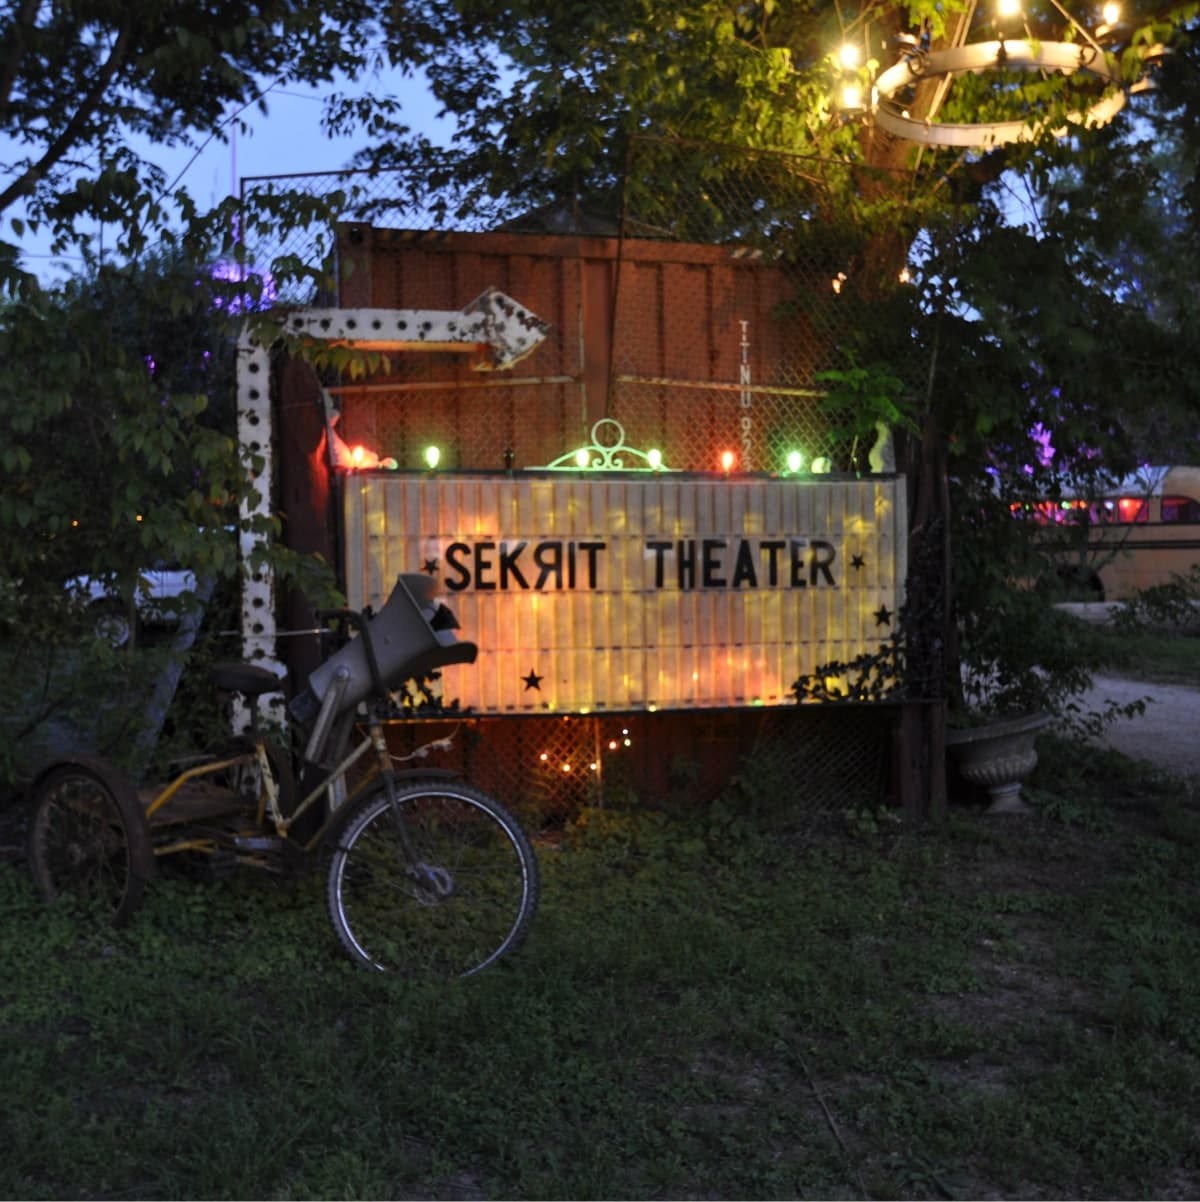 Austin Sekrit Theater sign